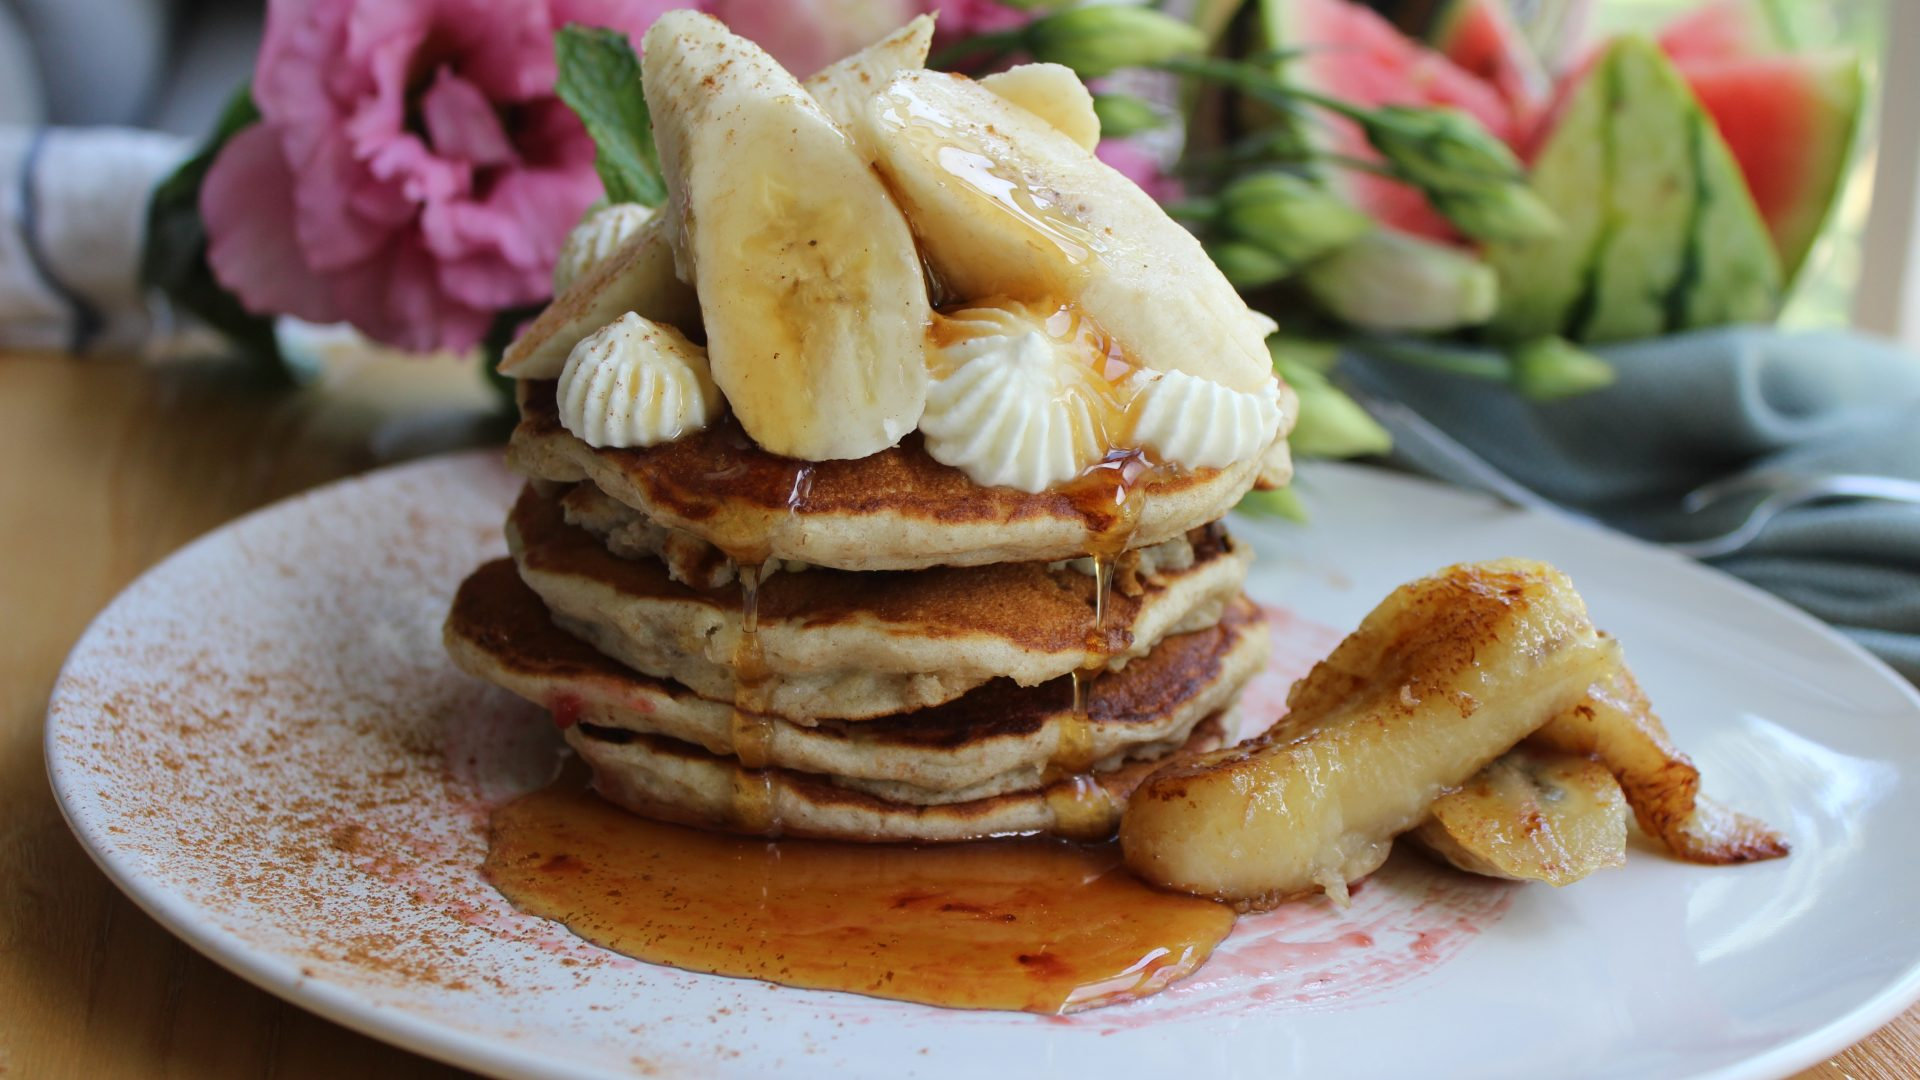 Our favourite pancakes – banana pancakes fluffy on the inside, crispy on the edges, no added sugar